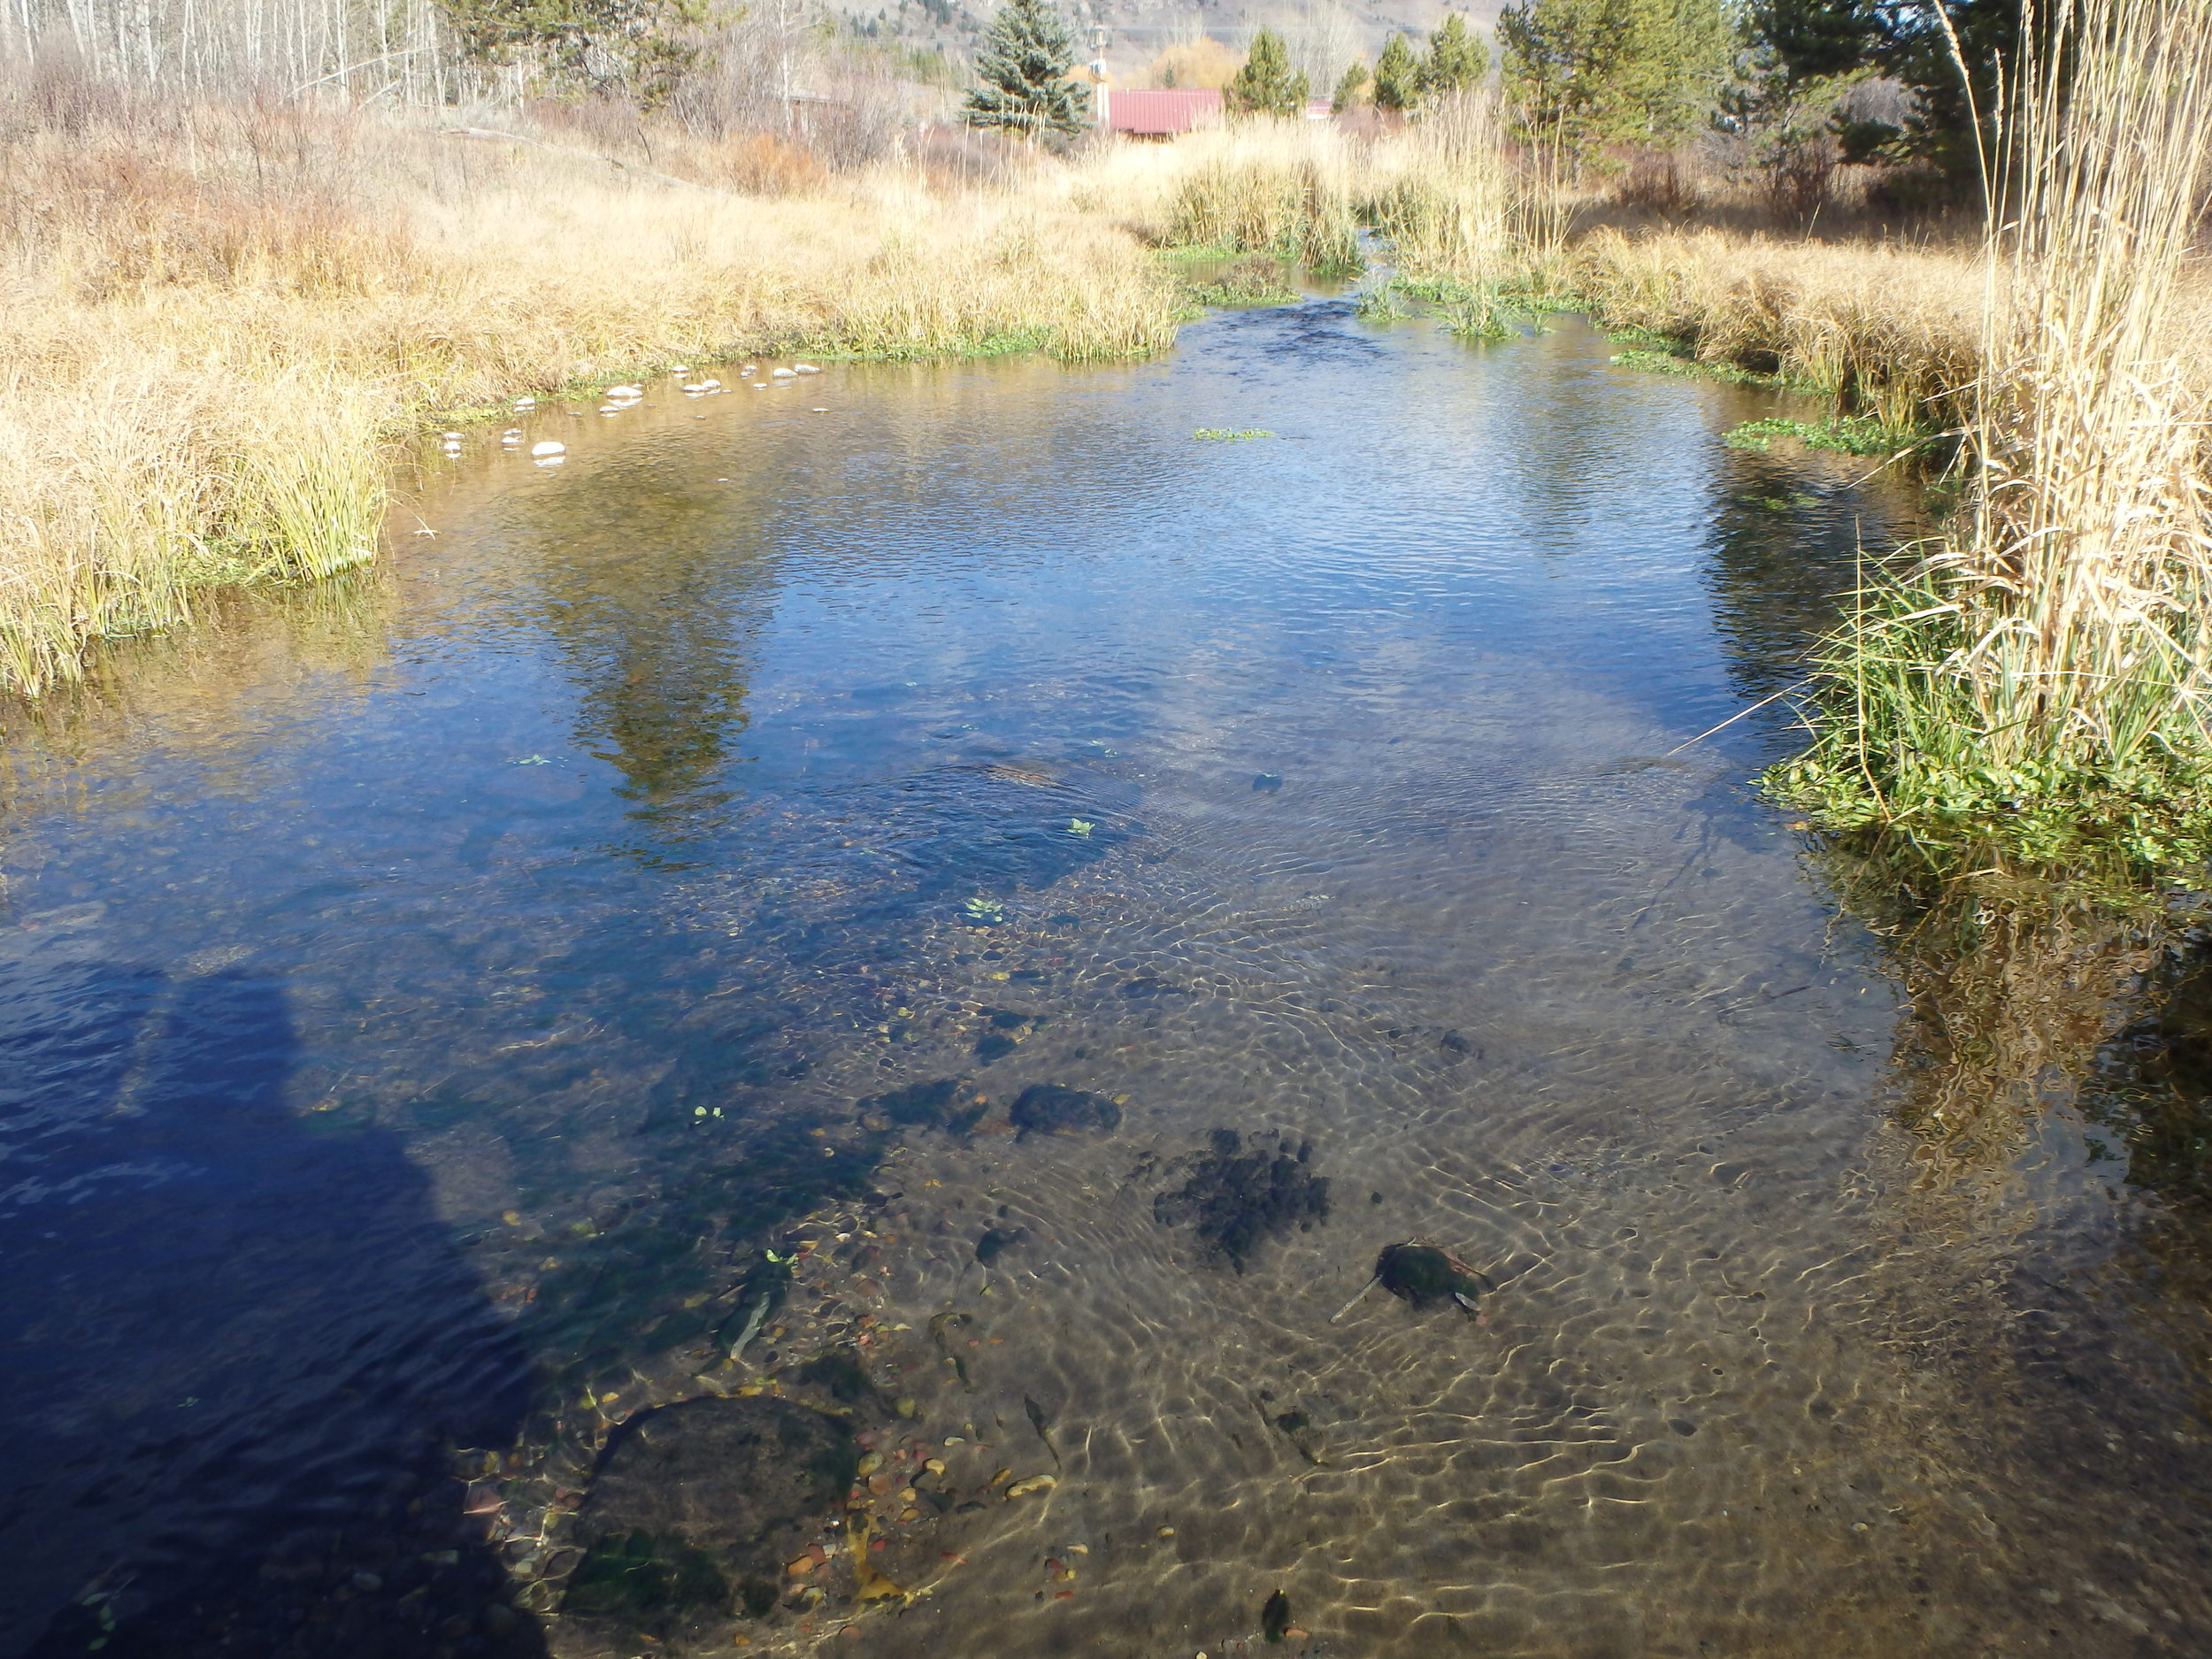 Before - the creek is silted and has minimal bank vegetation to provide shade and cover